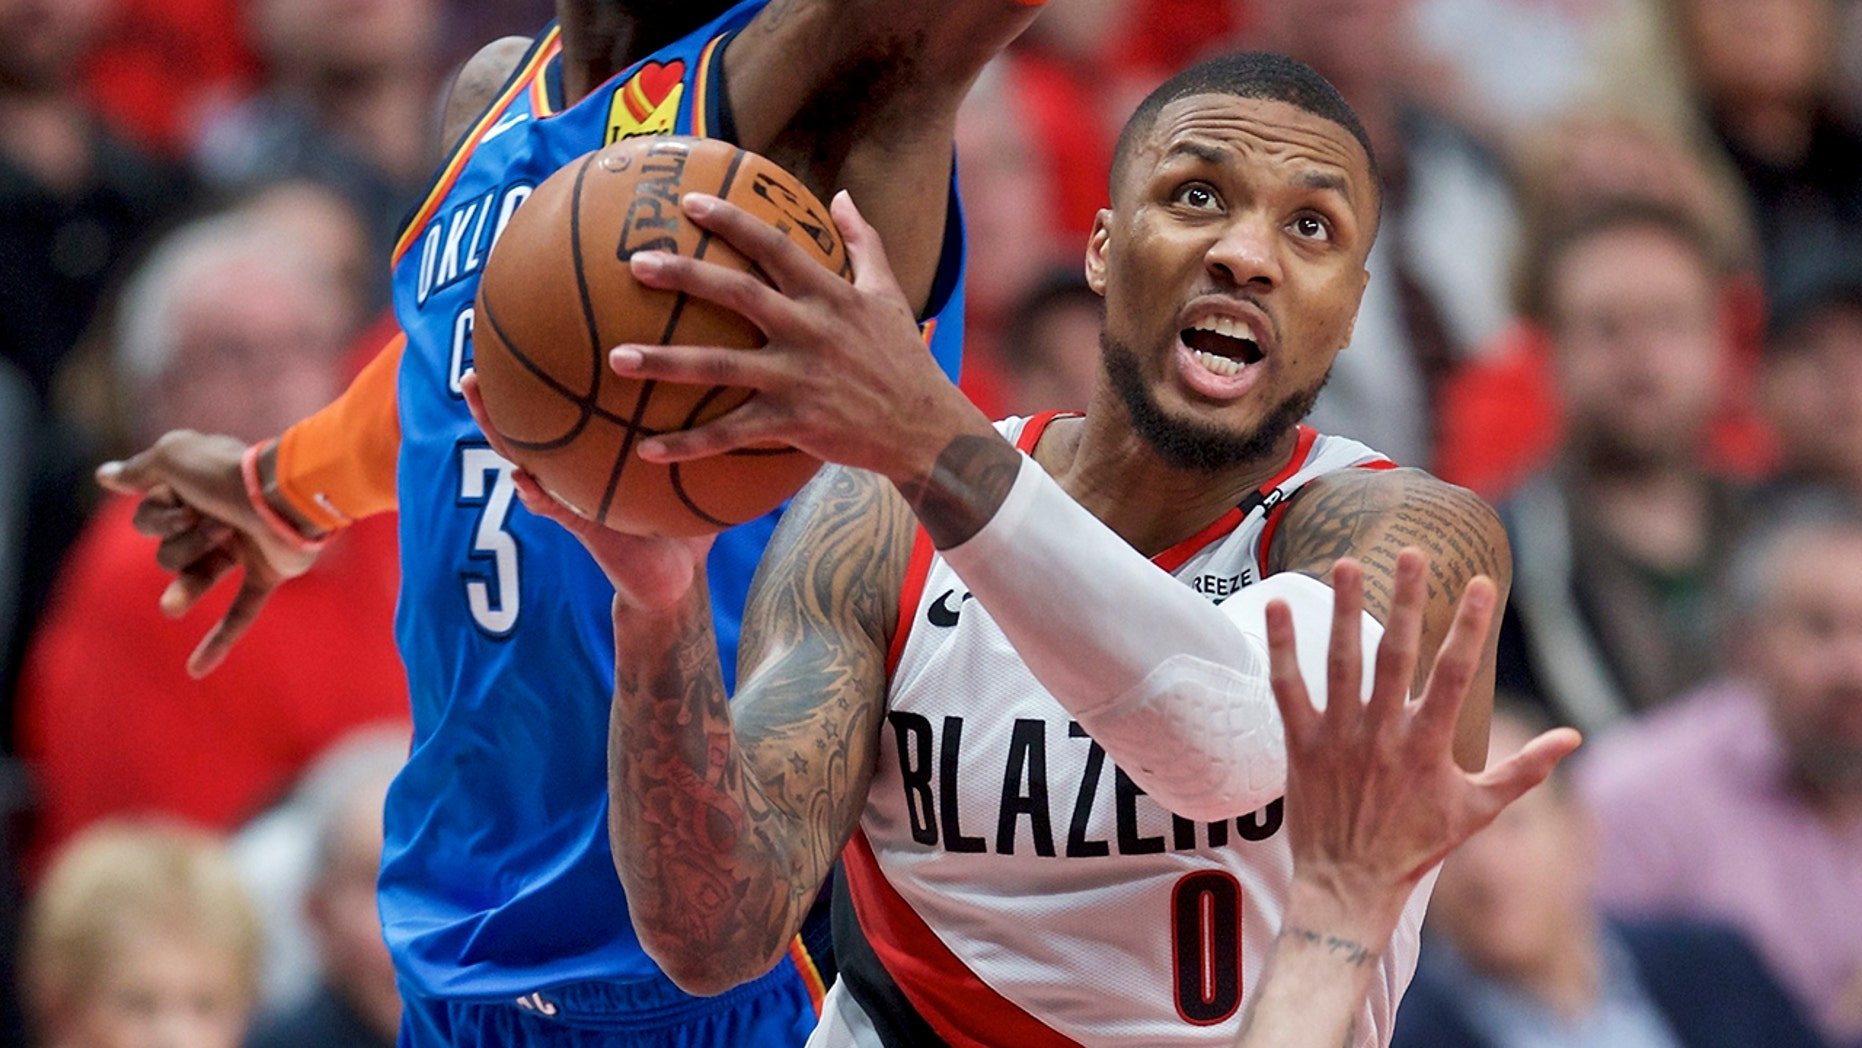 Portland Trail Blazers guard Damian Lillard, right, shoots in front of Oklahoma City Thunder forward Nerlens Noel during the second half of Game 2 of an NBA basketball first-round playoff series Tuesday, April 16, 2019, in Portland, Ore. (AP Photo/Craig Mitchelldyer)